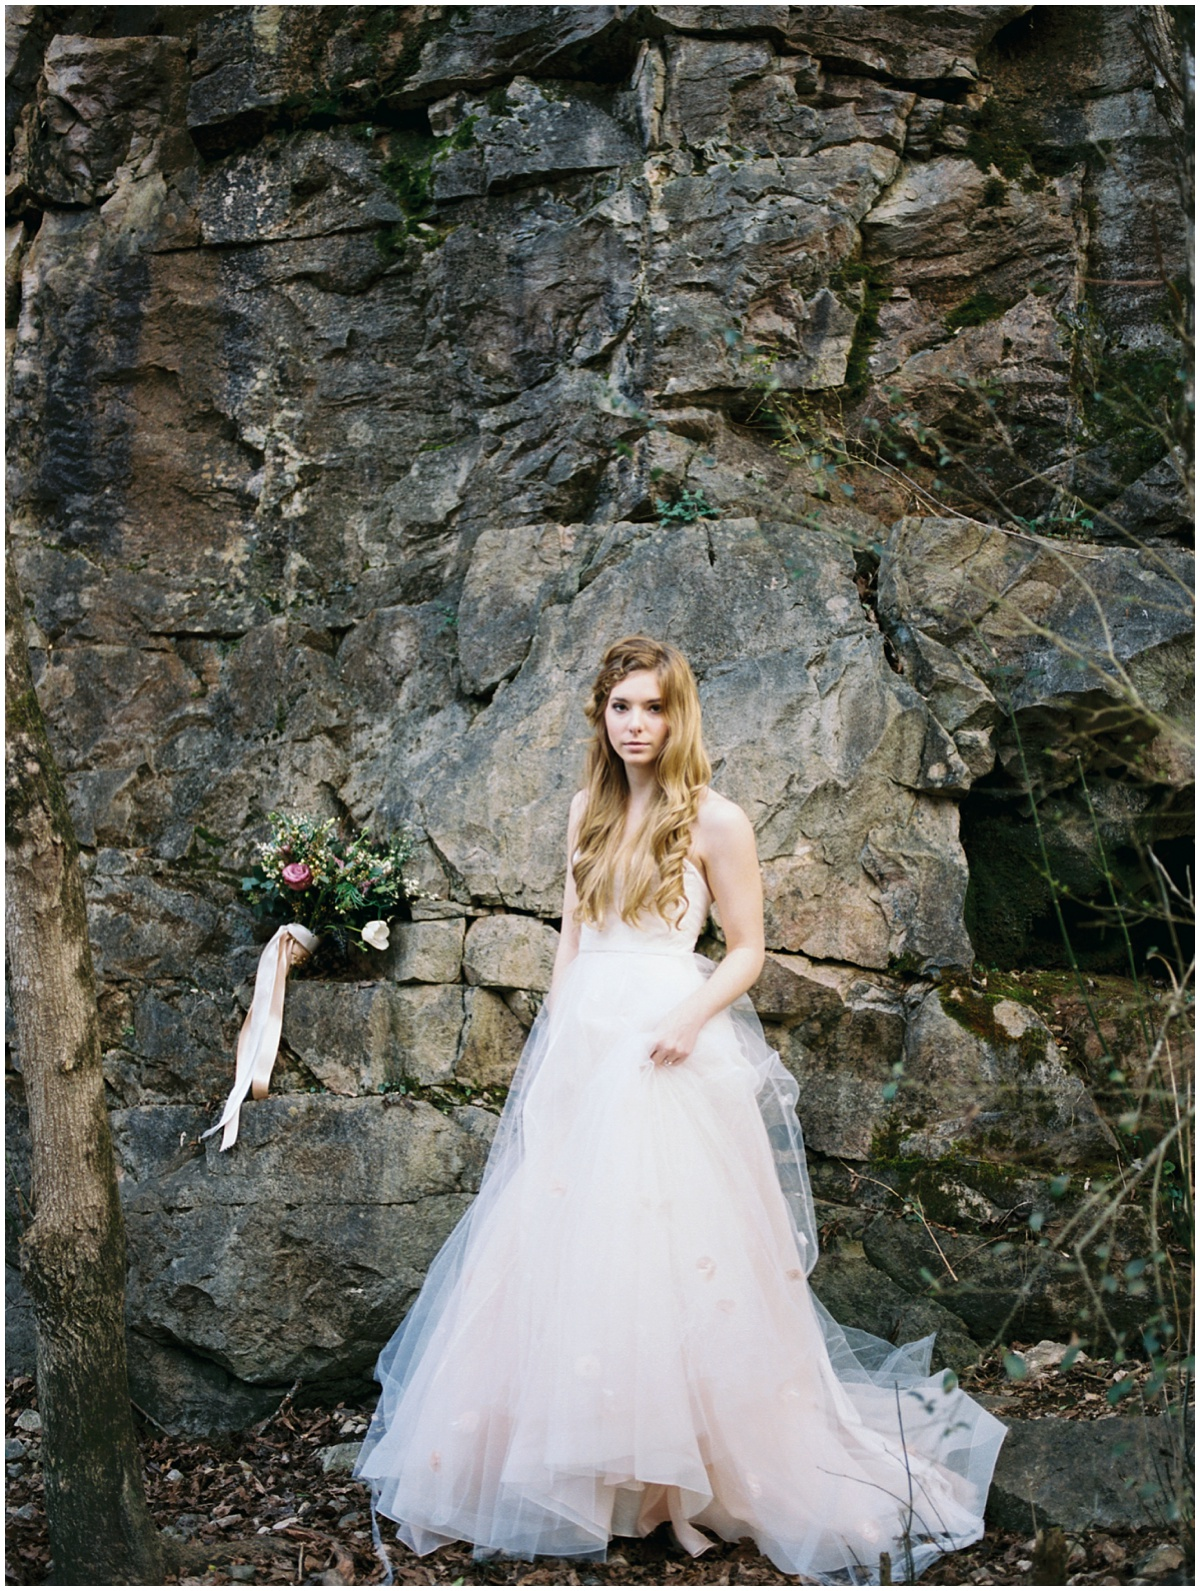 Abigail_Malone_Film_Wedding_Photography_KNoxville_TN_Blush_Dress_Outdoor_Windy_Pink_and_Green_Wedding_0024.jpg